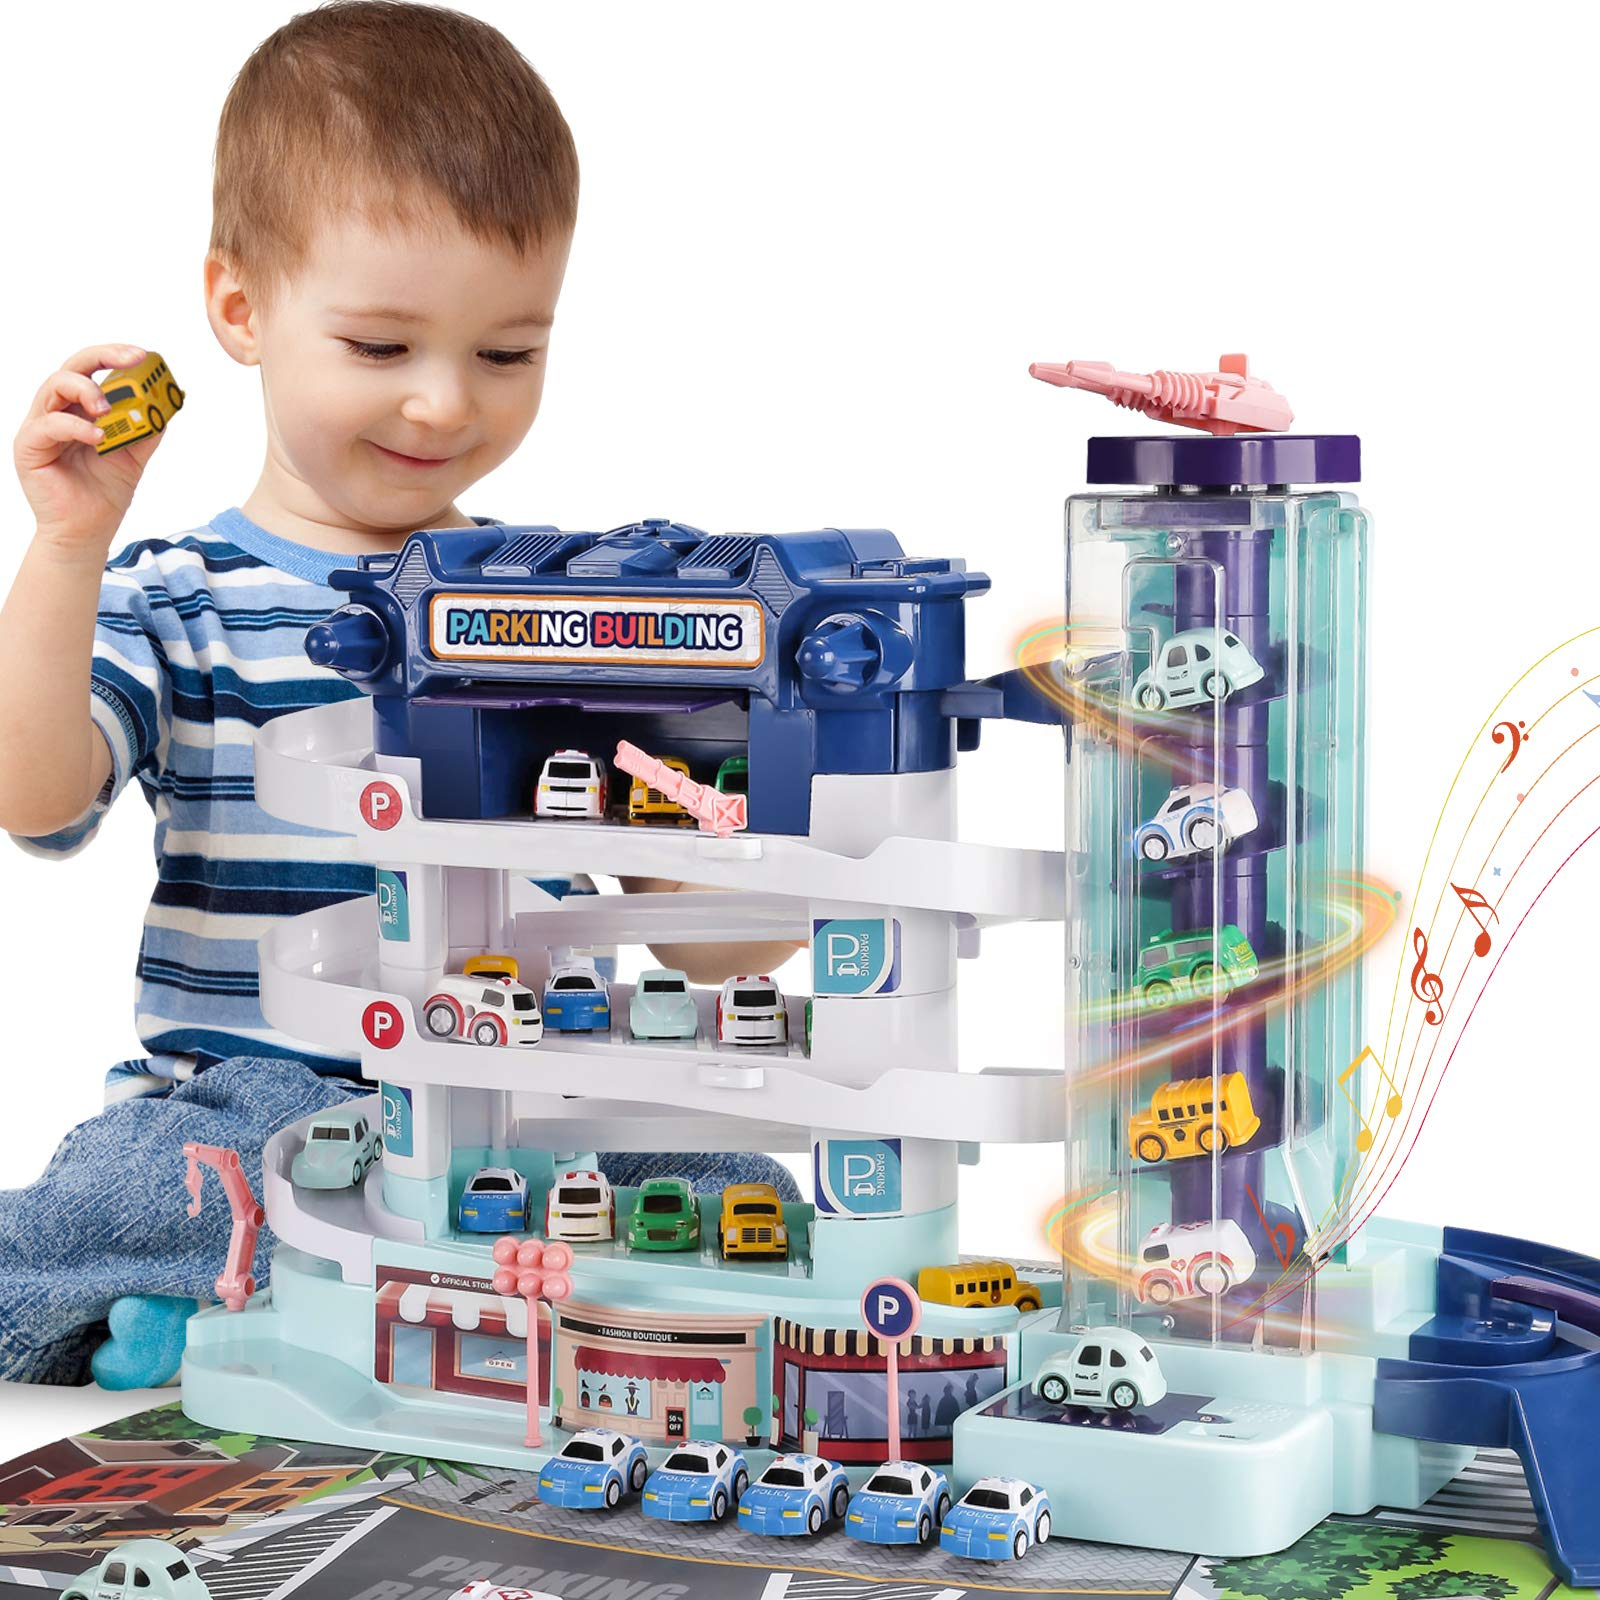 BABYHOME Race Car Track Garage - 2 in 1 Electric 3-Story Parking Building w/ Elevator Light & Sound 4 Mini Cars, Toy Vehicle playset for 3 4 5 Years Old Boys Girls